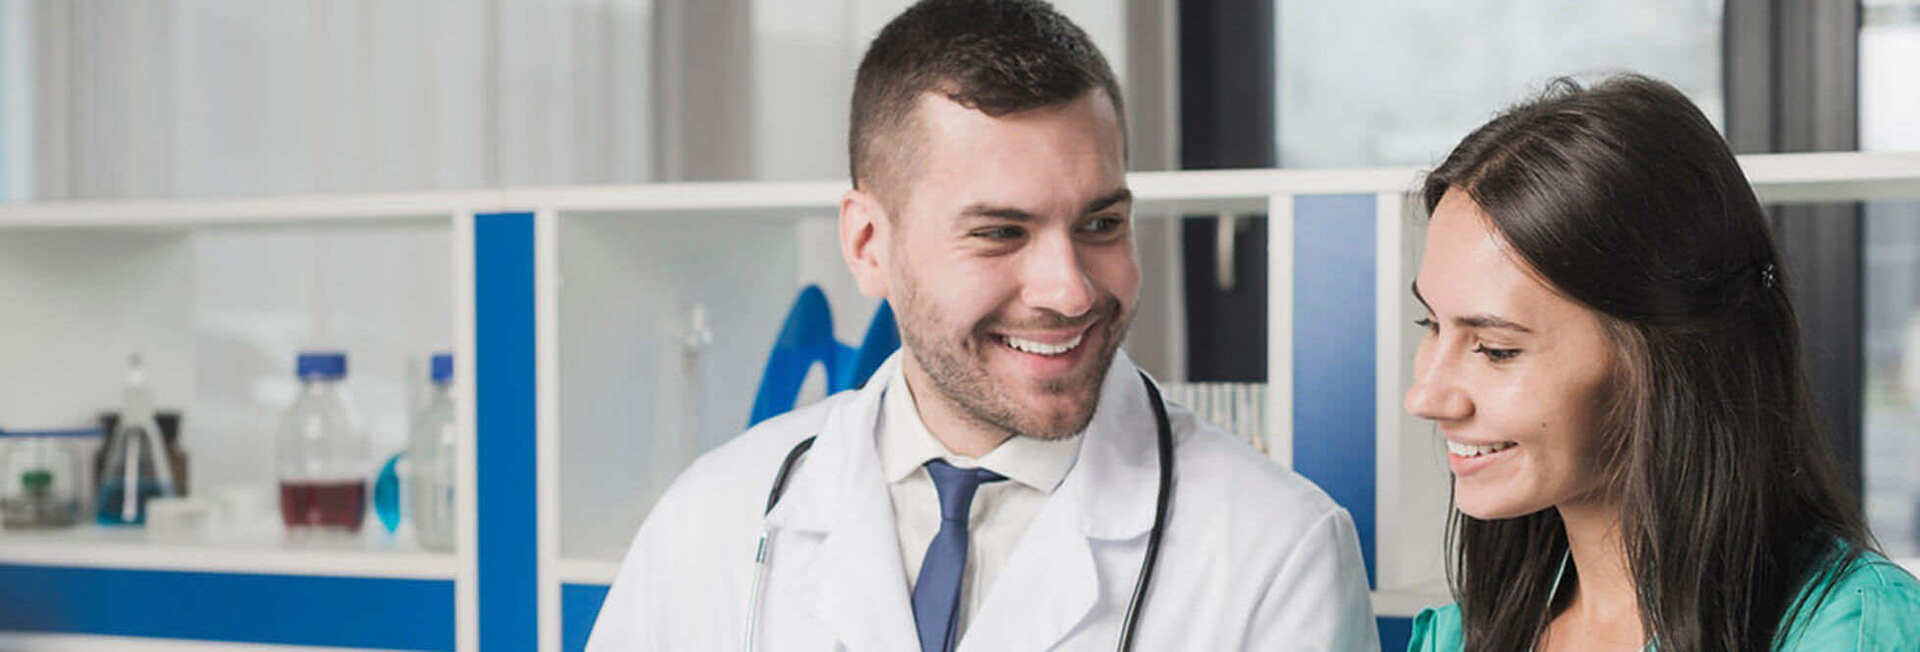 about-us-the-doctors-clinic-group